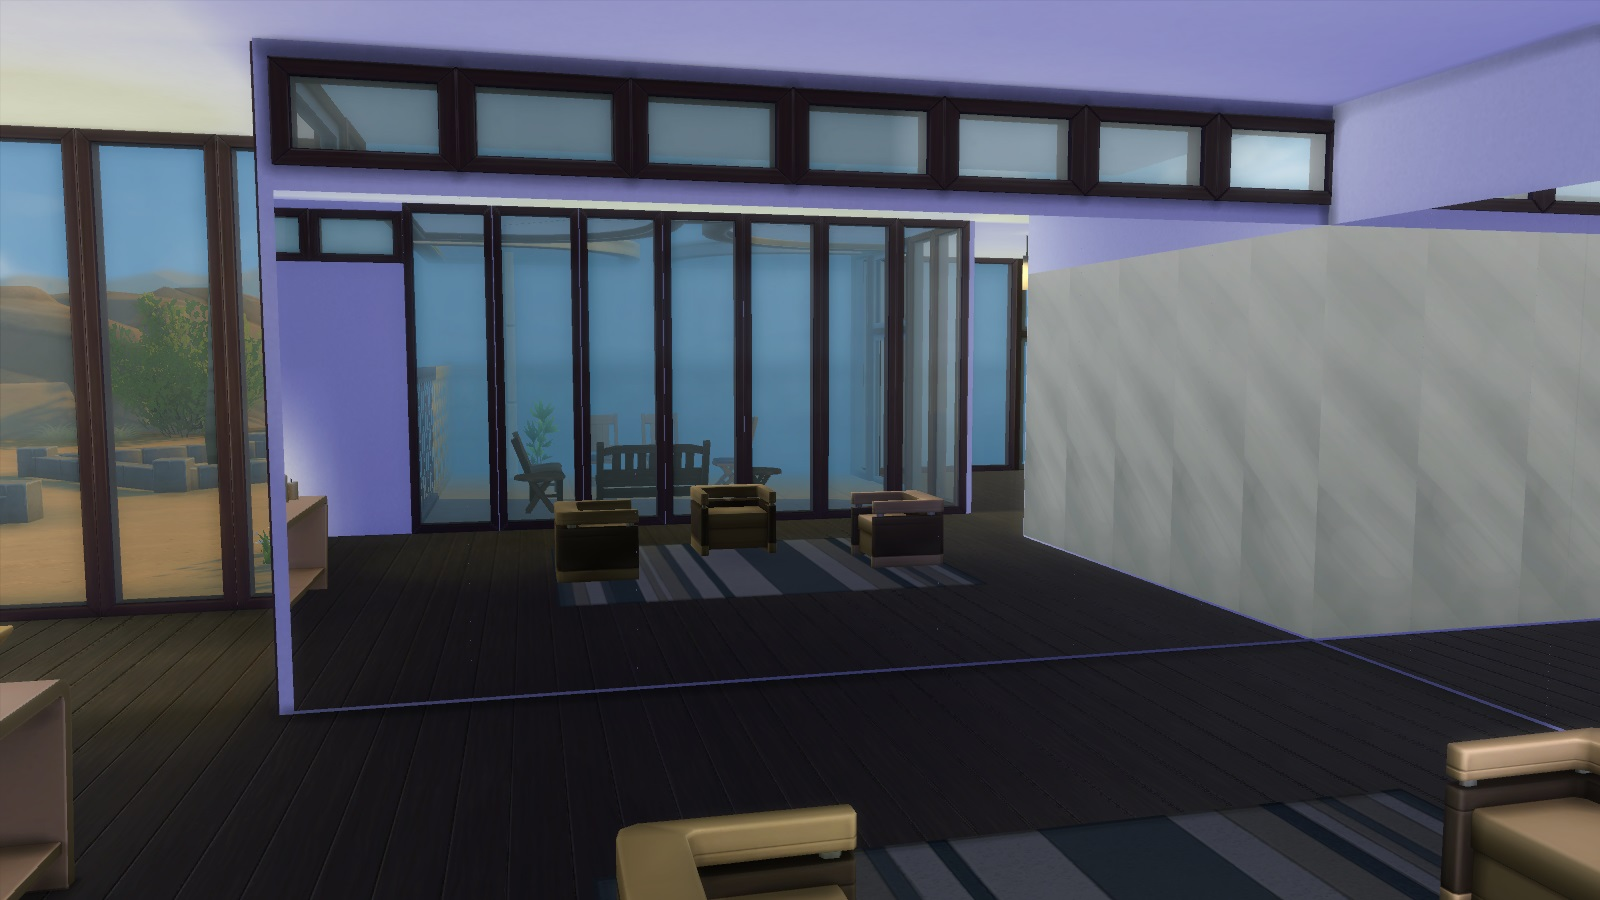 Mod The Sims - Simple Wall Mirror